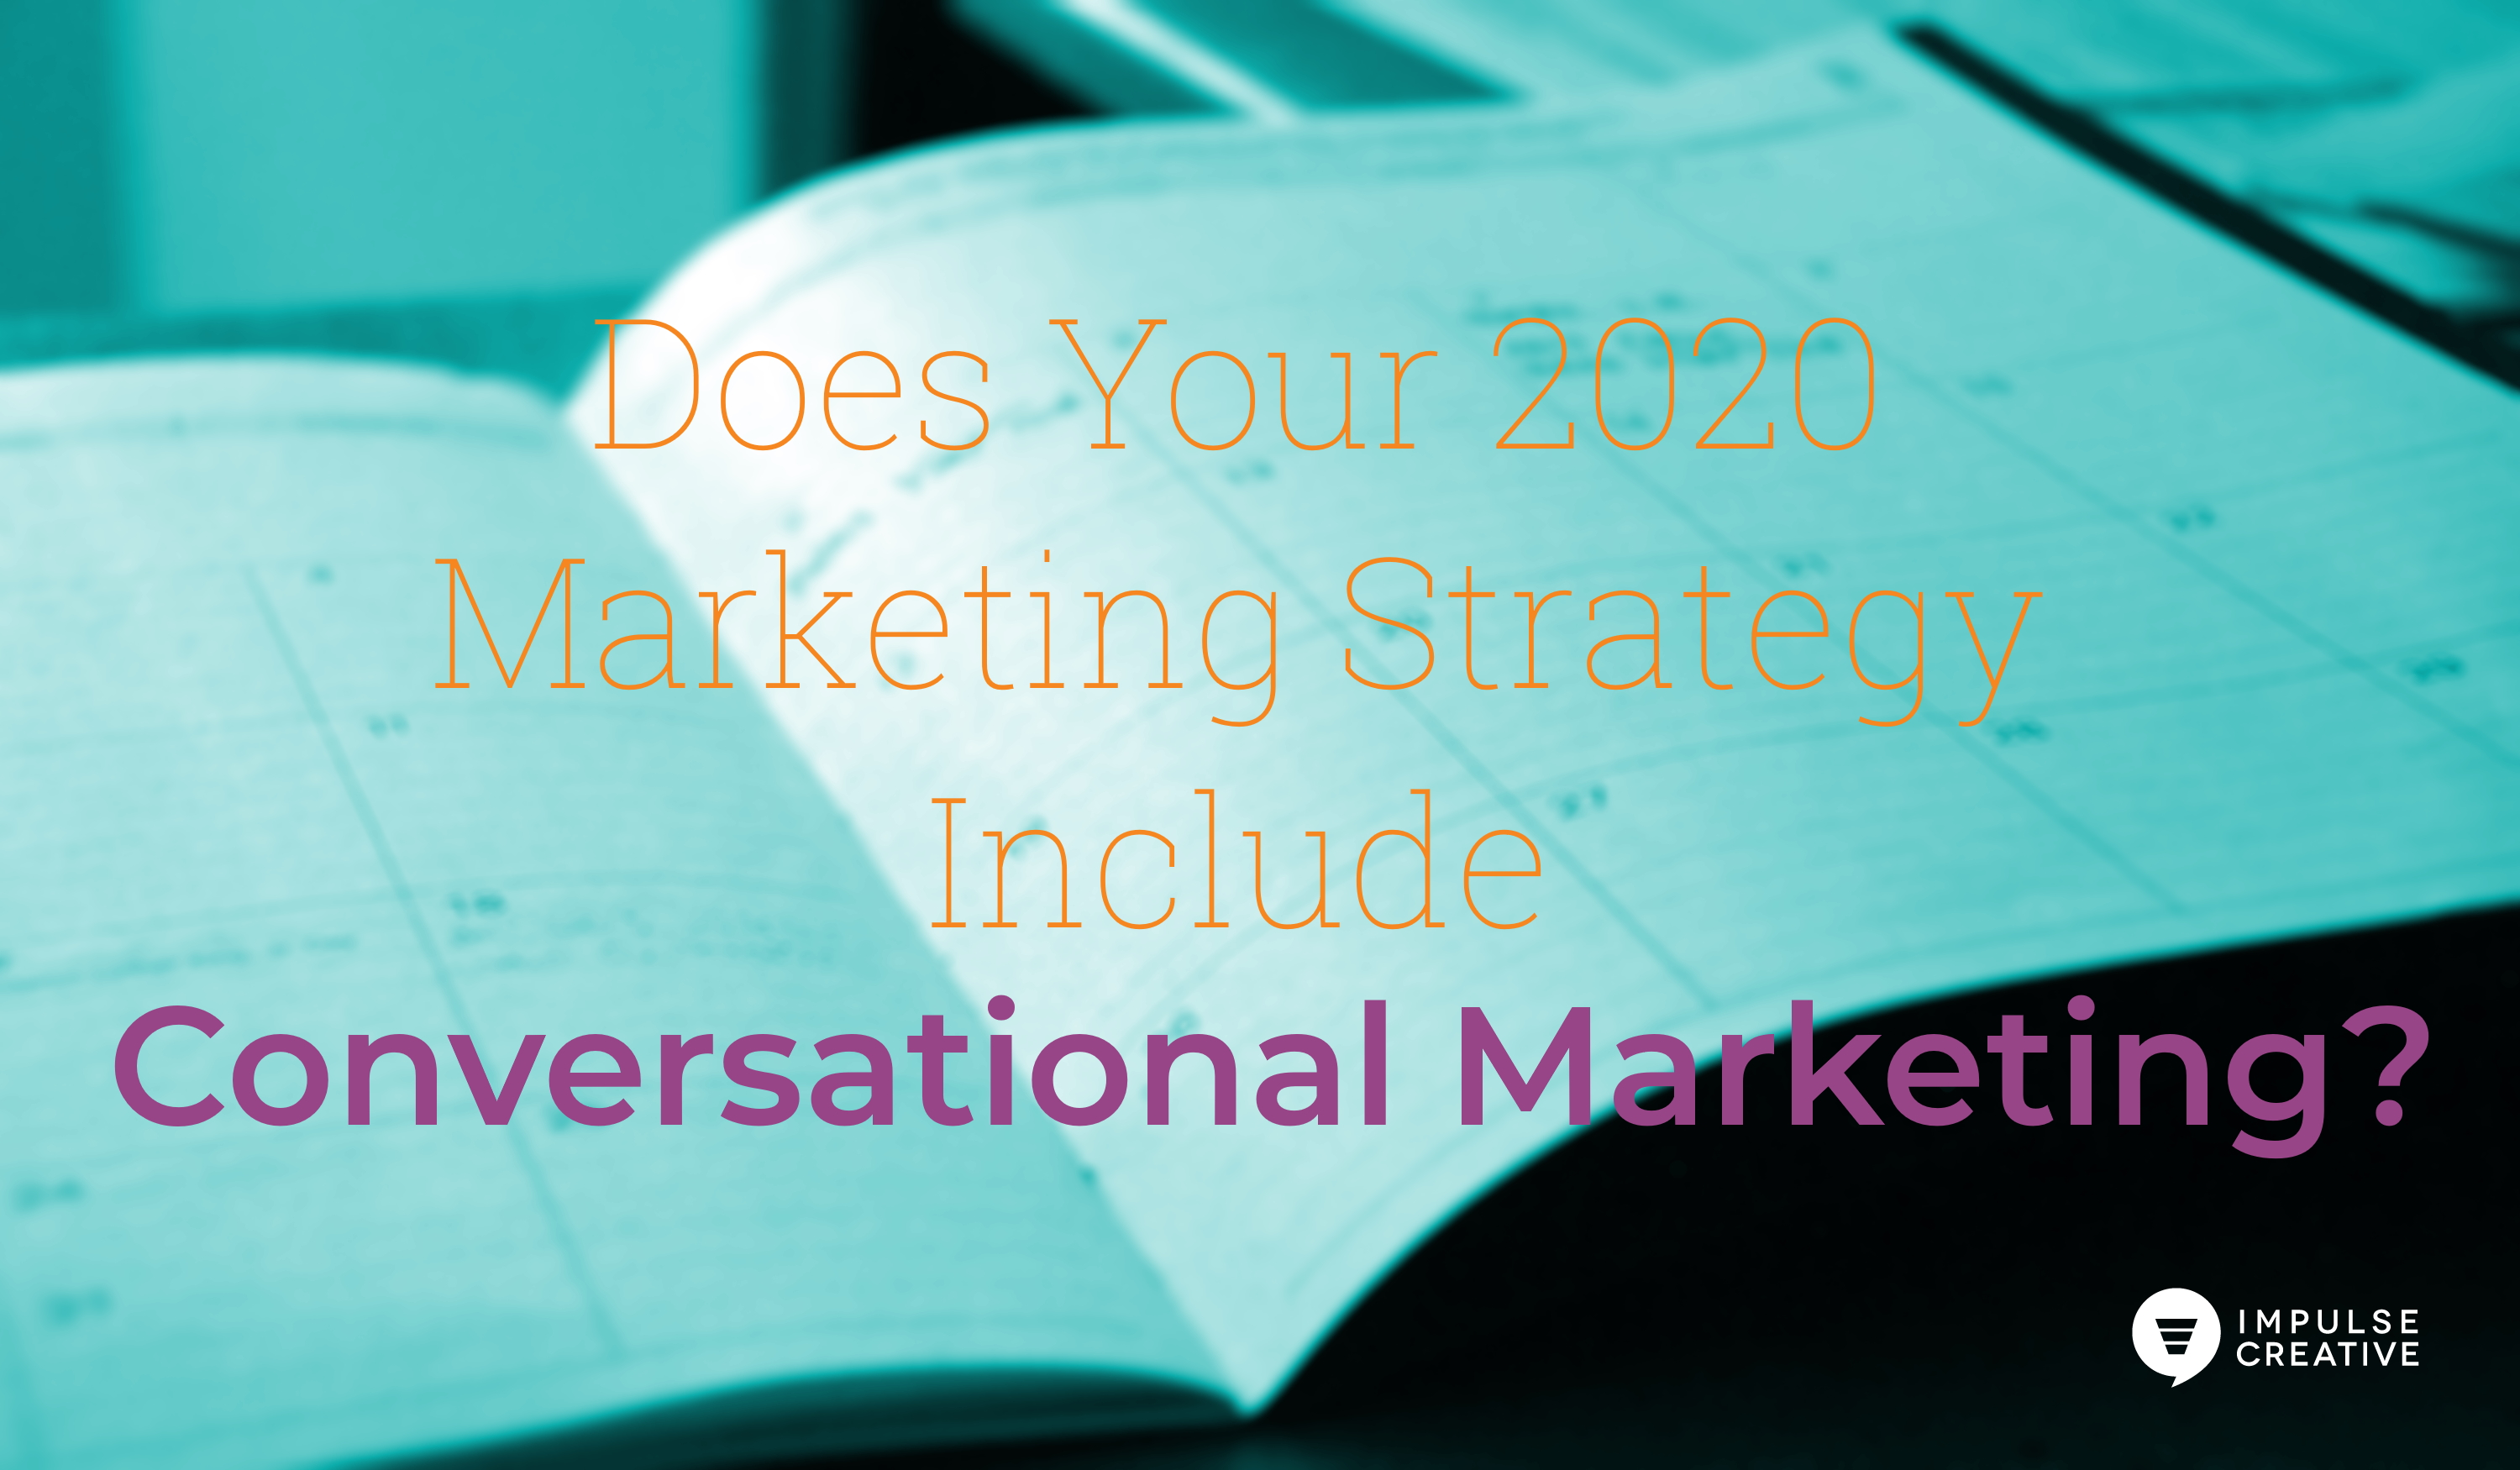 Does Your 2020 Marketing Strategy Include Conversational Marketing?